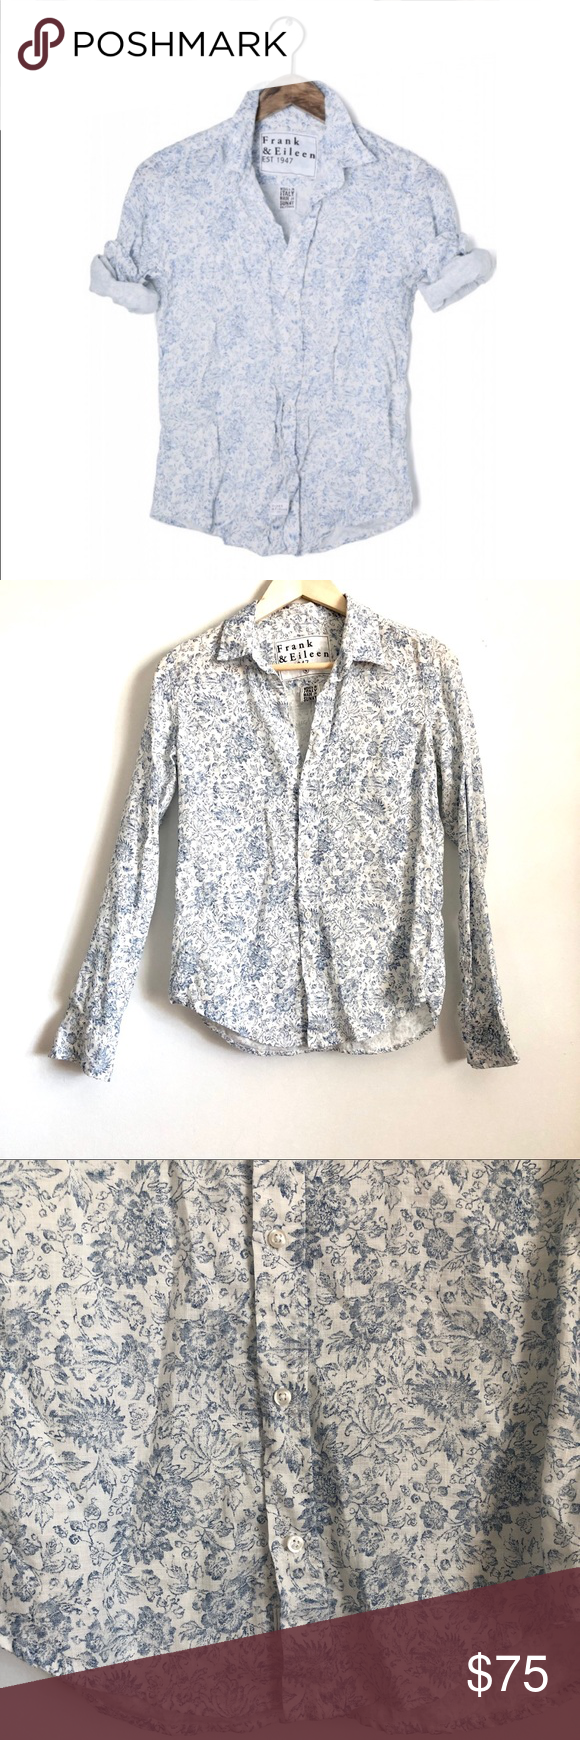 2ae3bc55 Frank & Eileen - Barry floral Button Down Top 40-121 Frank & Eileen Barry